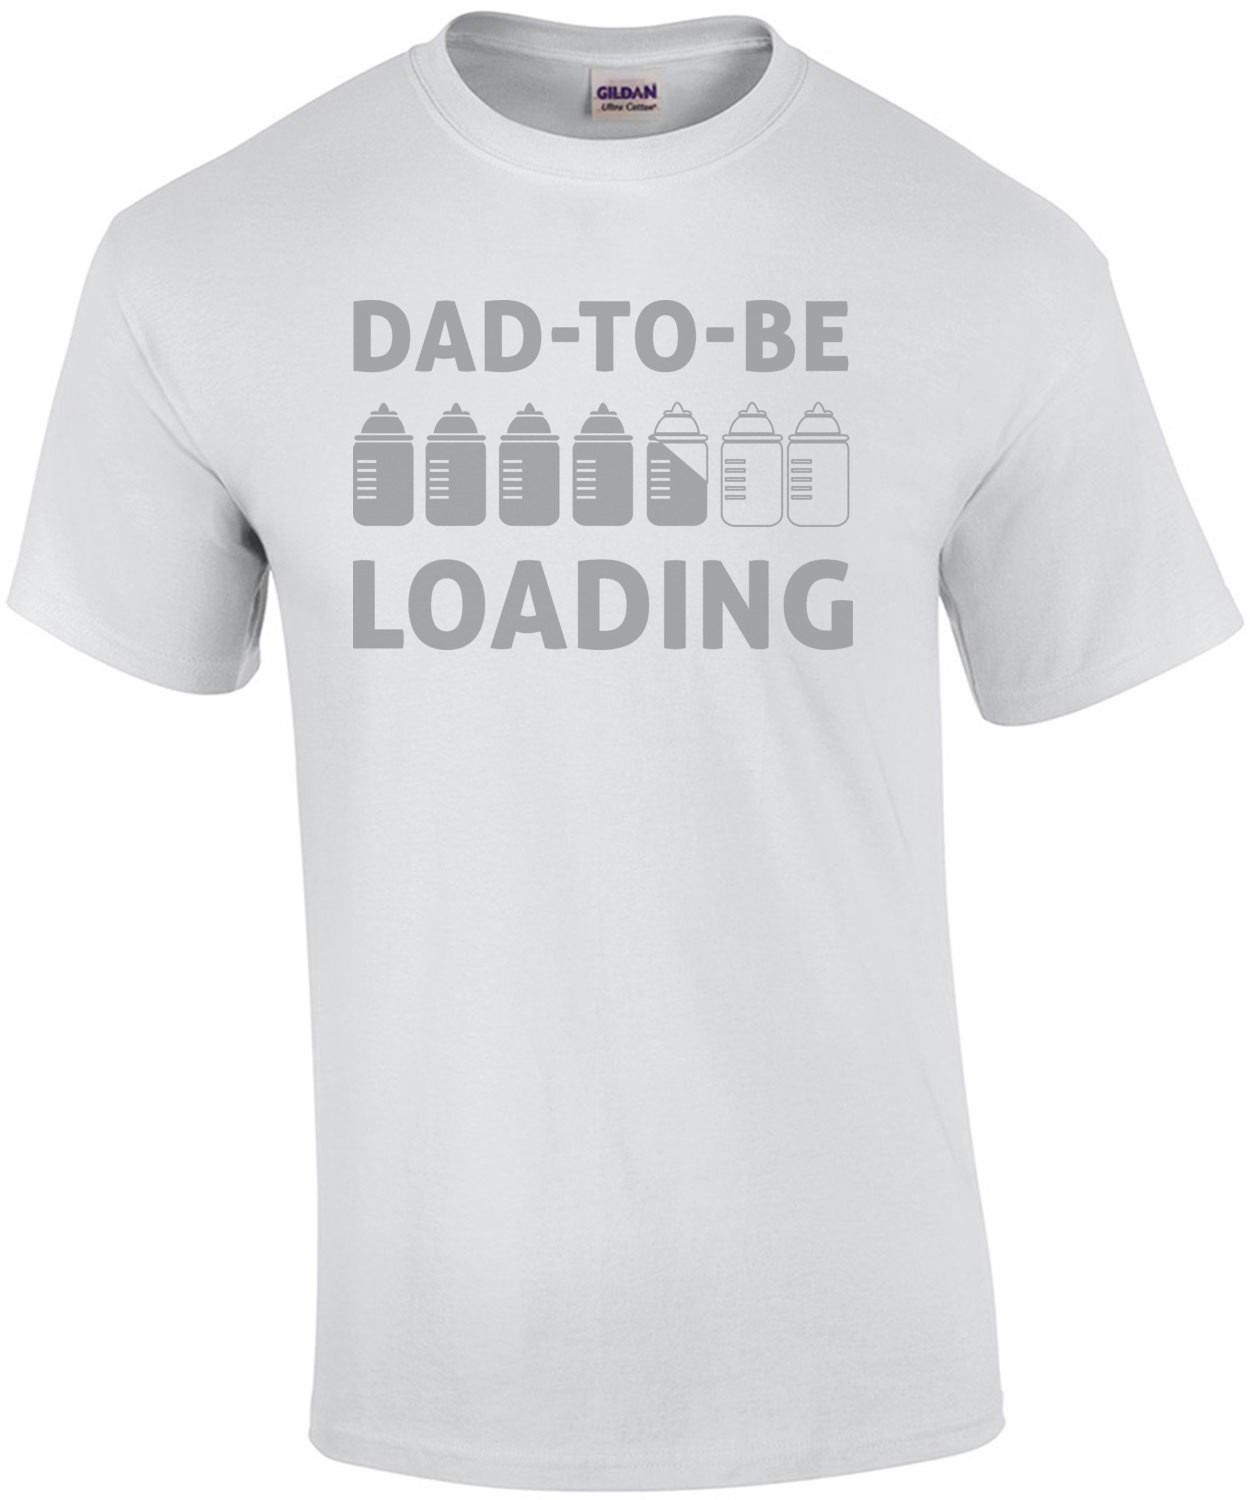 Dad To Be Loading - Expectant Father T-Shirt